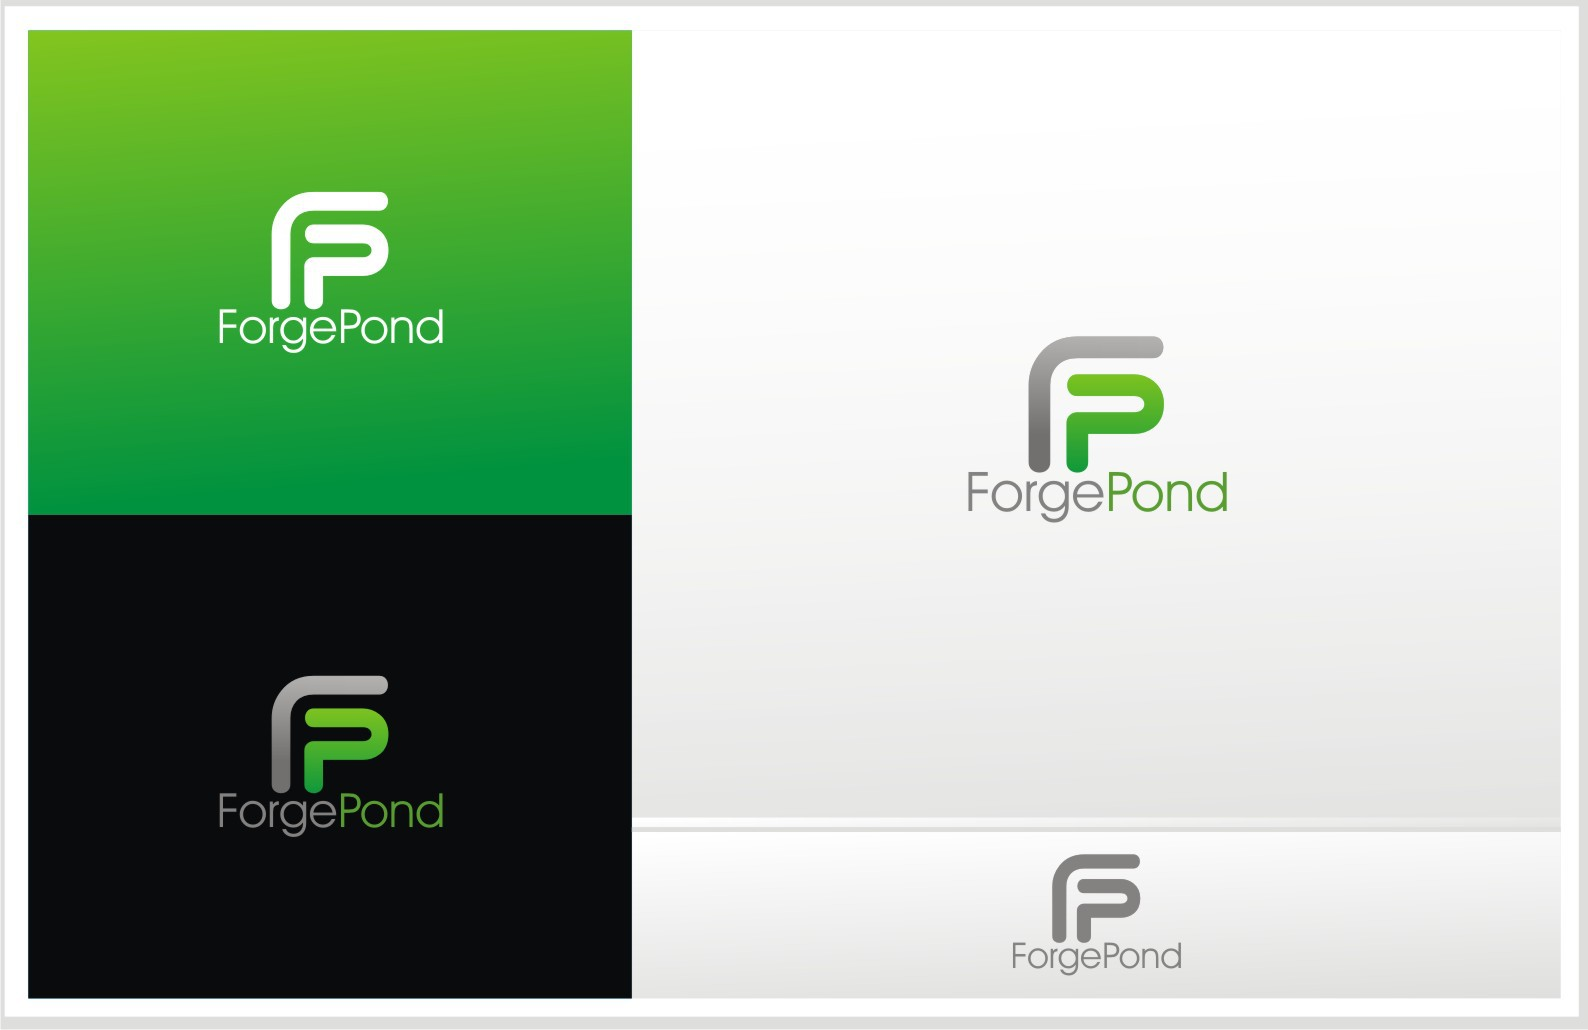 New logo wanted for ForgePond Inc